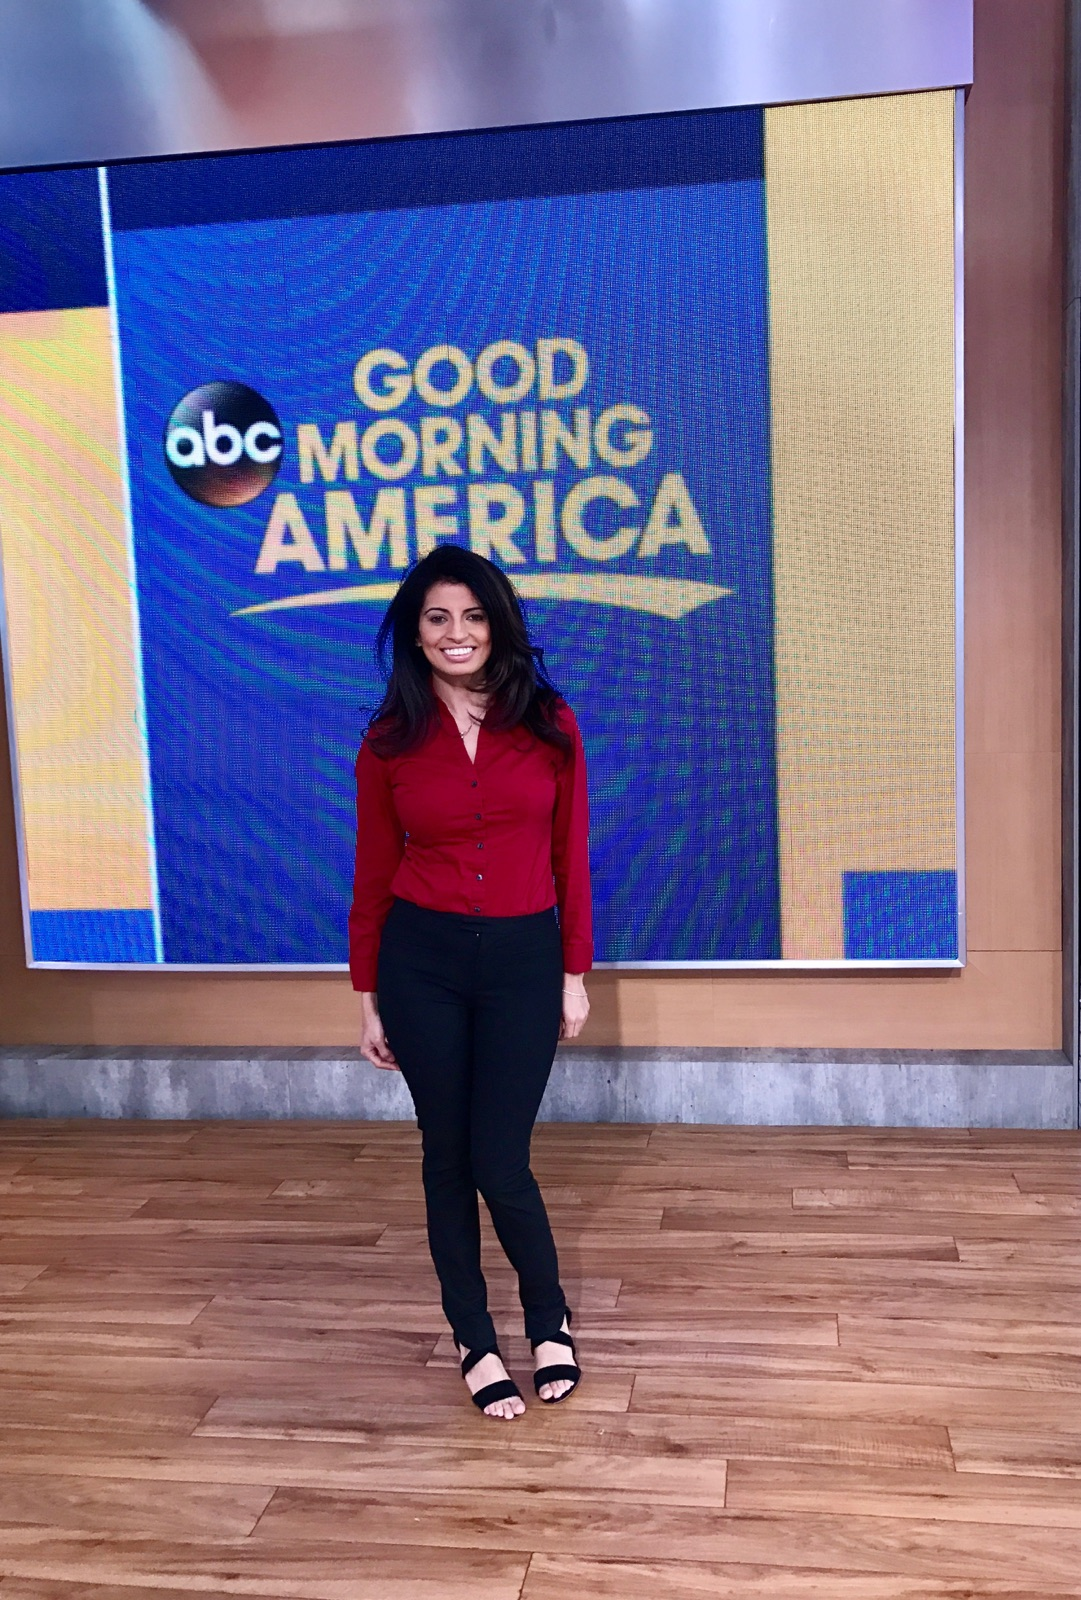 Nisha - Good Morning America